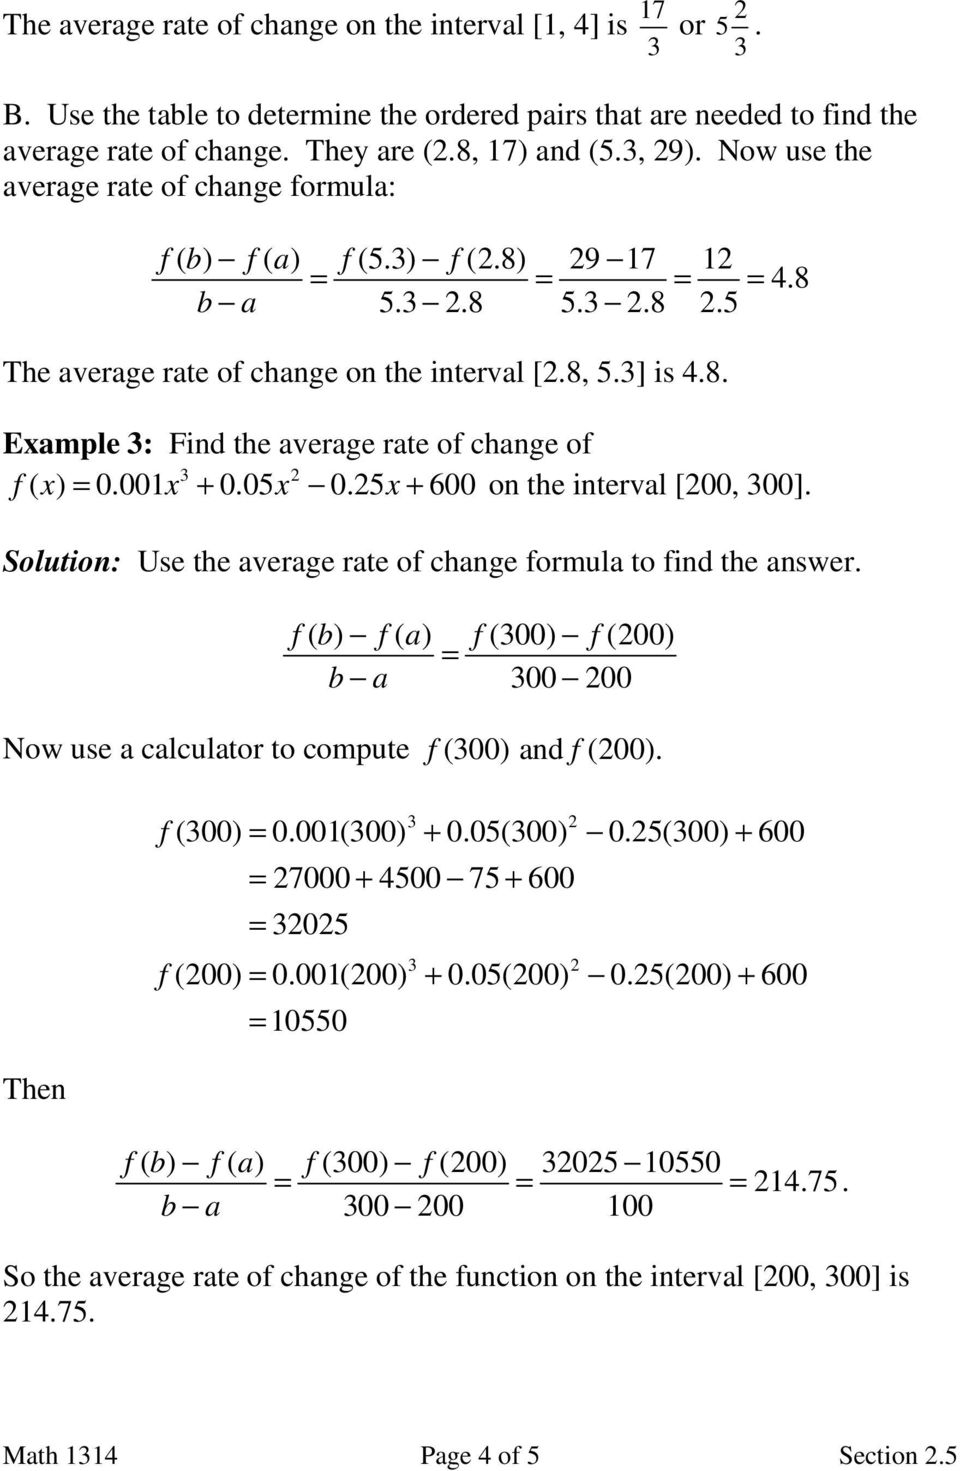 Average Rate Of Change Worksheet With Answers - Nidecmege